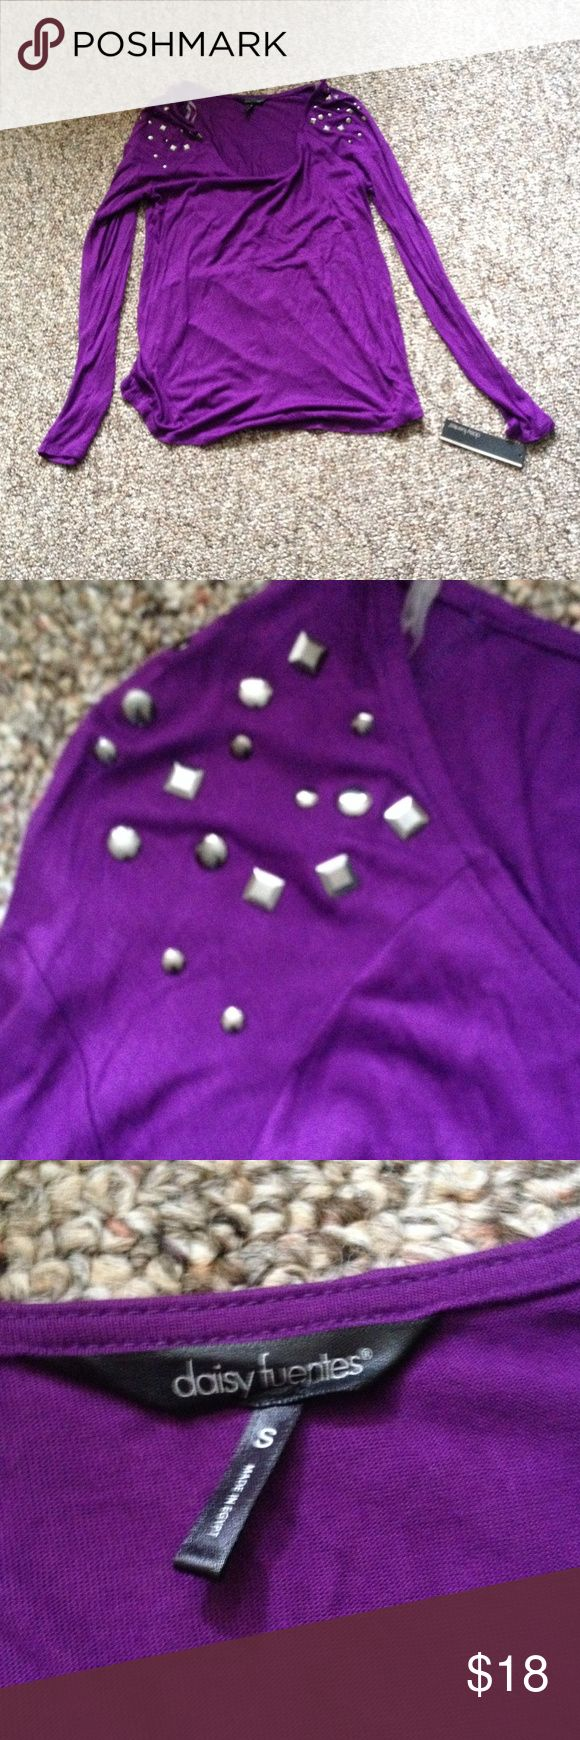 🆕listing! daisy Fuentes long sleeve top Beautiful purple long sleeve top. Soft 100% Rayon material, brand new with tag. Silver gemstones on shoulders . Daisy Fuentes Tops Blouses